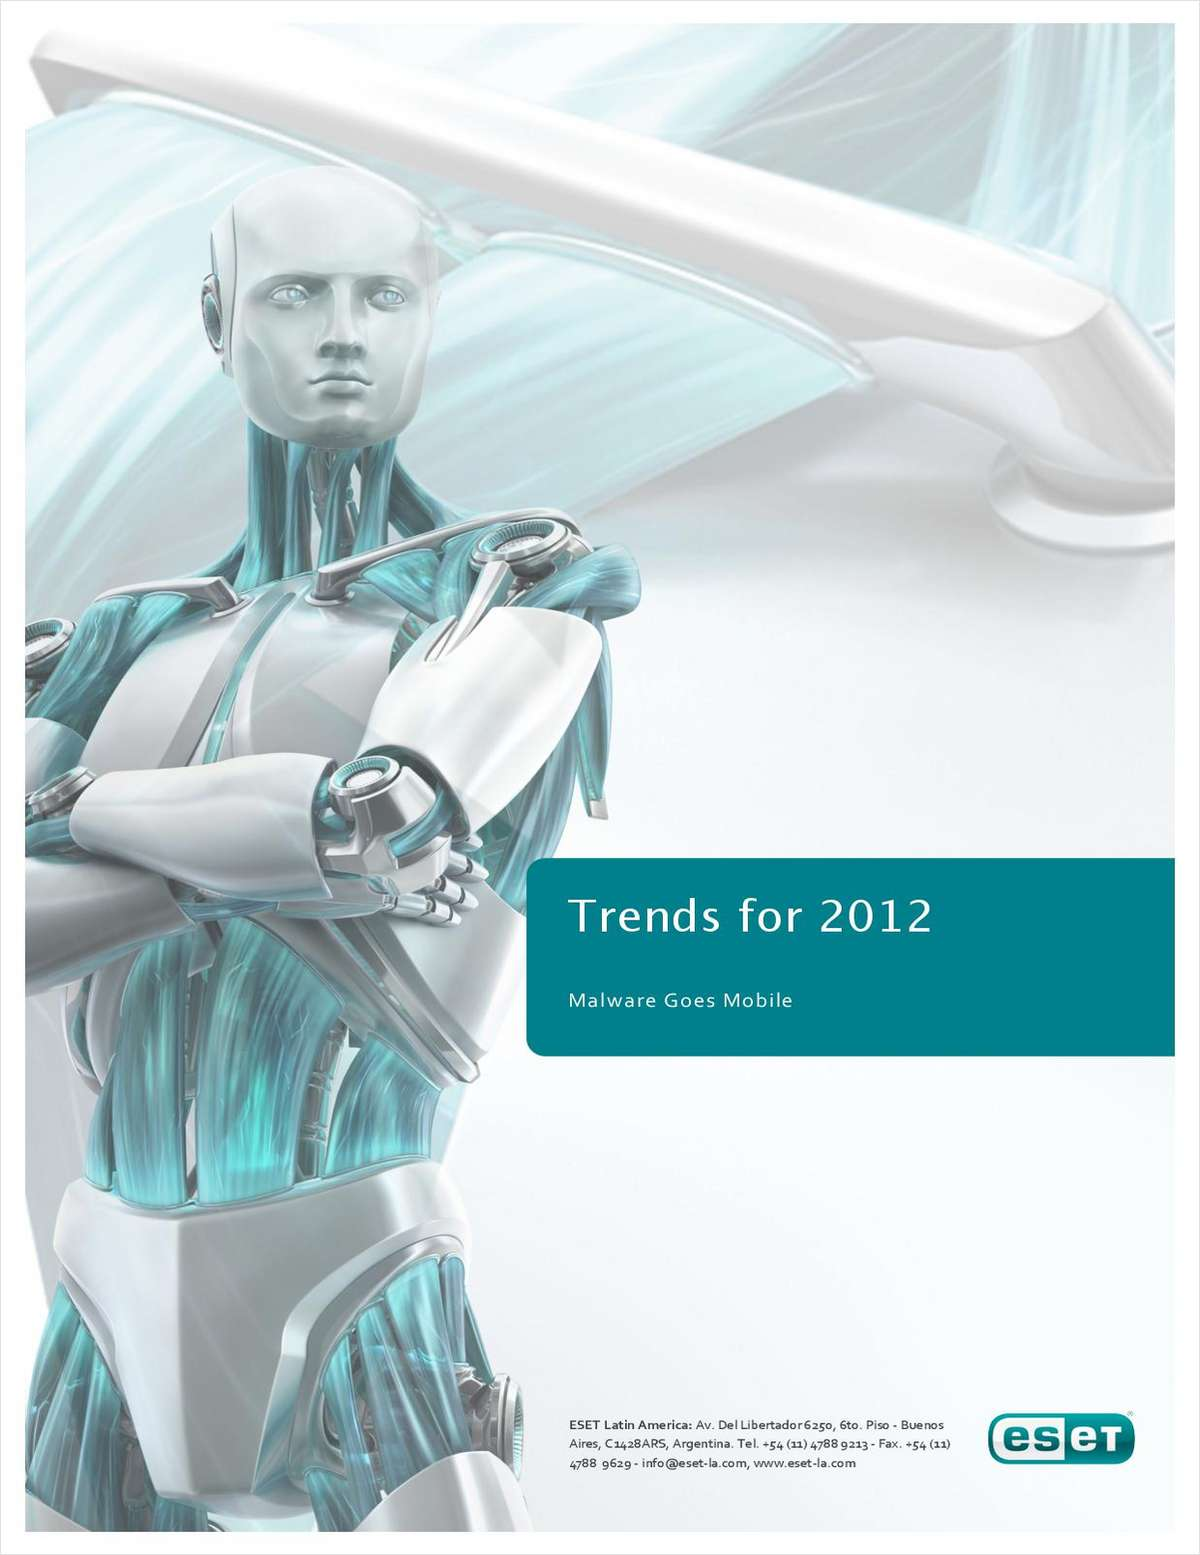 Trends for 2012: Malware Goes Mobile